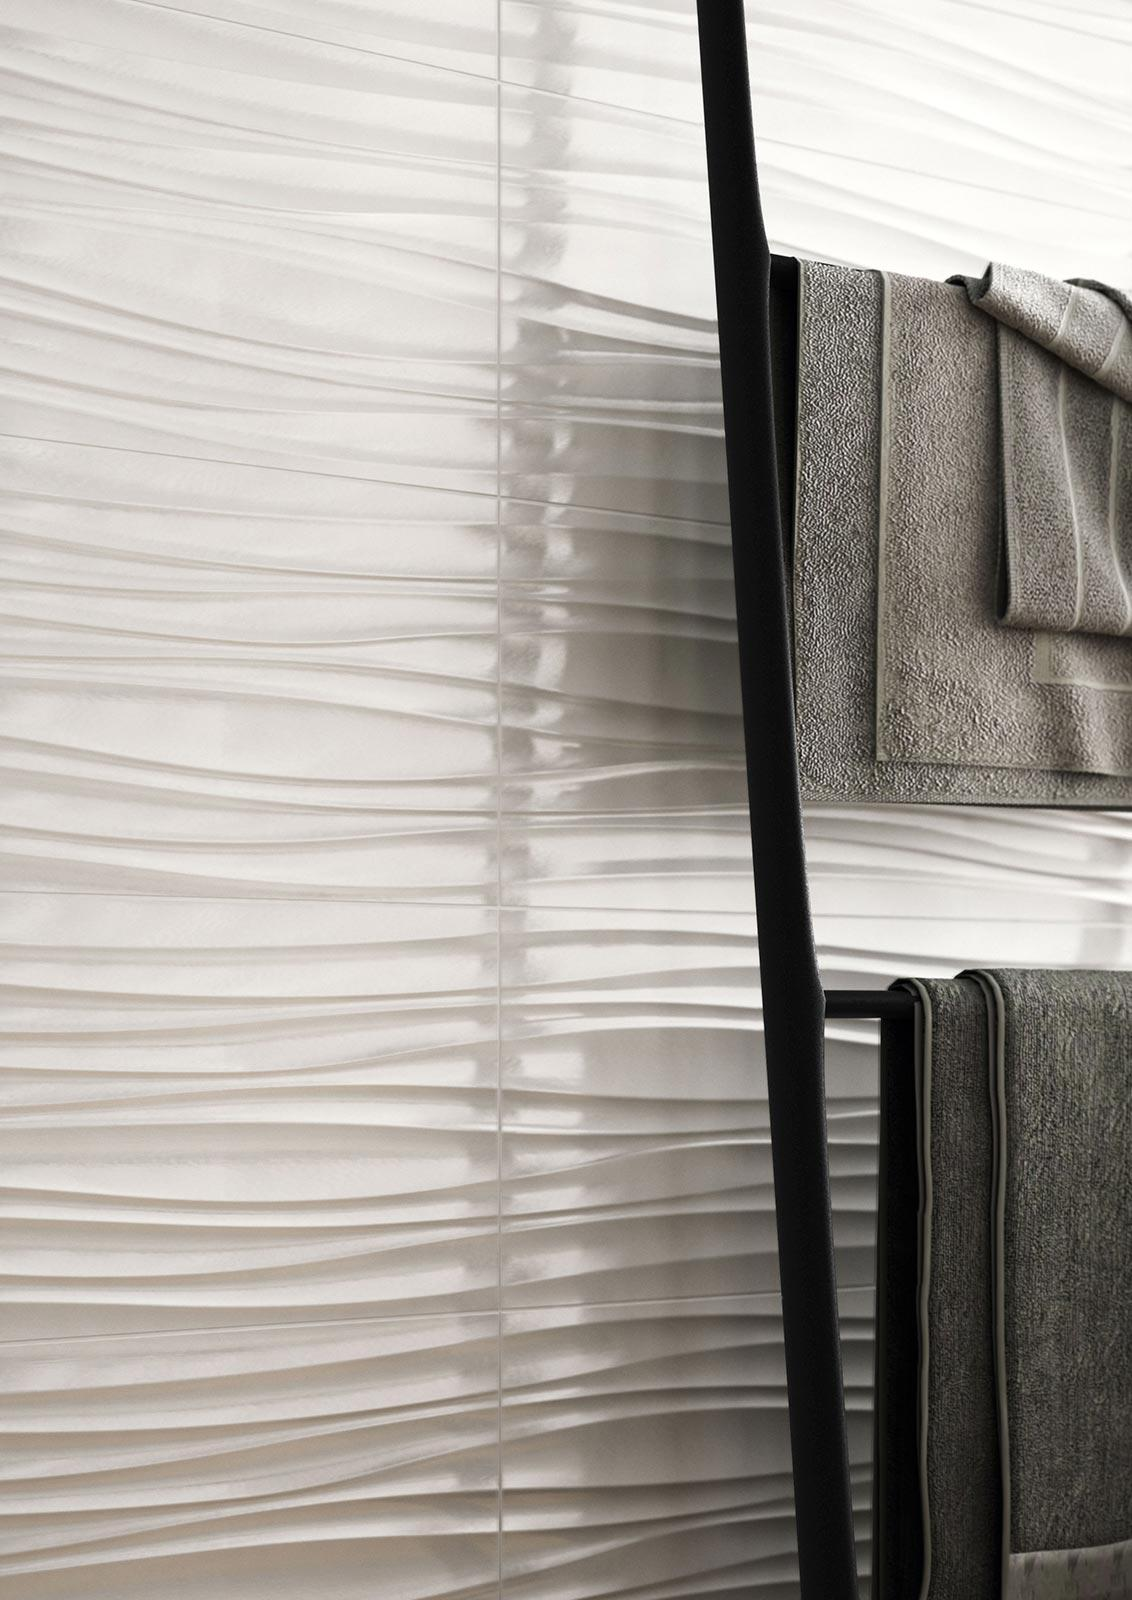 Close-up of textured wall tiles recalling the wavy shape of sand moved by the wind.